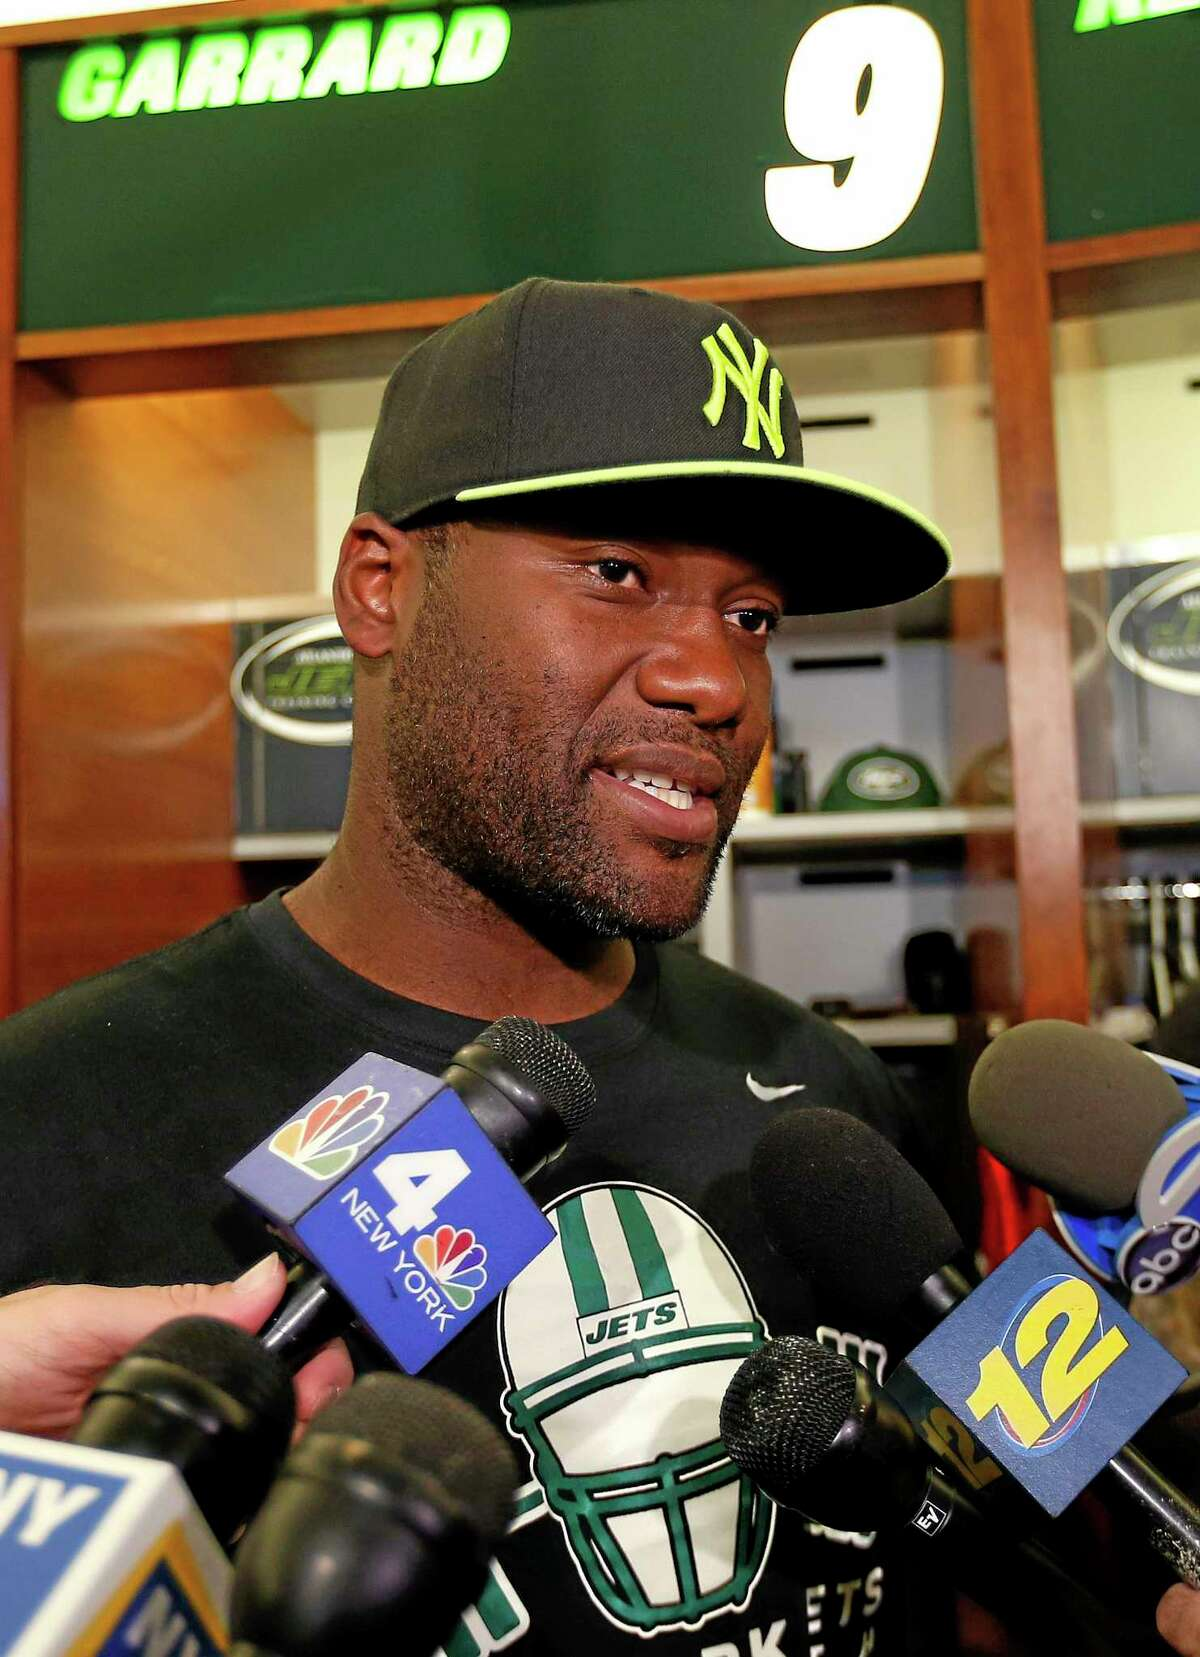 In this May 2 file photo, New York Jets quarterback David Garrard talks to reporters during a locker room availability at the team's practice facility in Florham Park, N.J. After considering retirement the last few months, Garrard has re-signed with the Jets to serve as a veteran backup and mentor to rookie Geno Smith, the team announced Thursday.